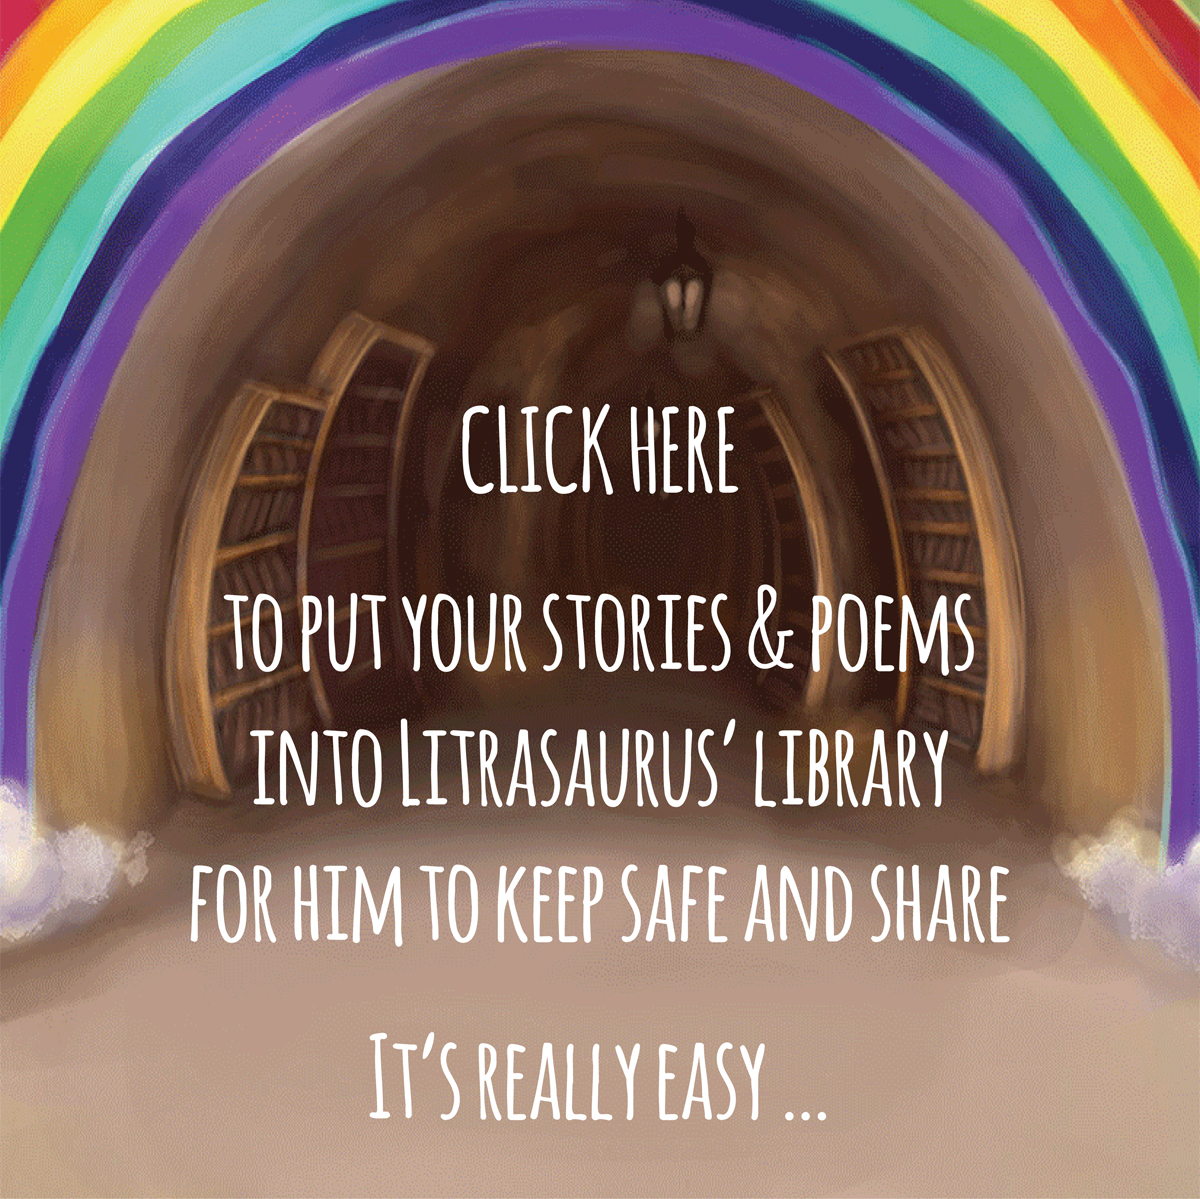 Put your stories & poems into Litrasaurus' library for him to keep safe and share